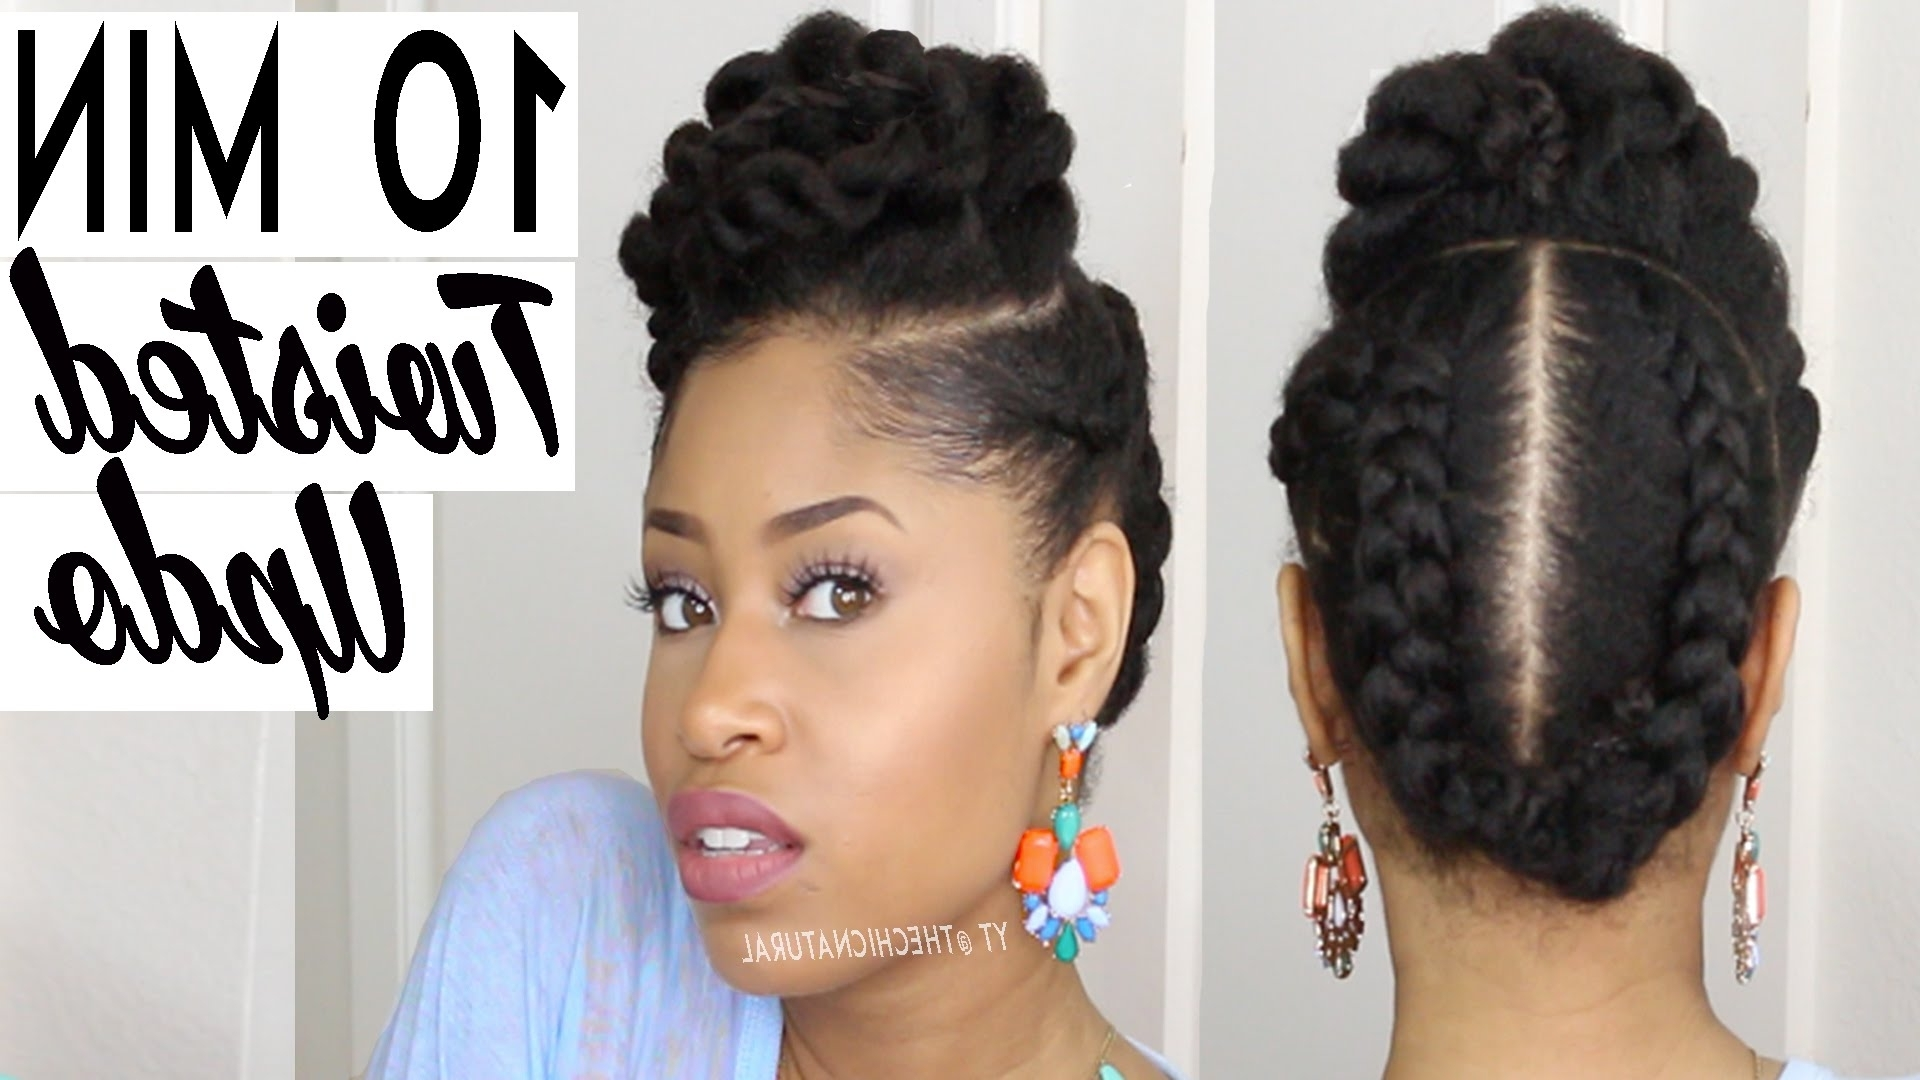 The 10 Minute Twisted Updo | Natural Hairstyle – Youtube Regarding Twist Updo Hairstyles For Black Hair (View 12 of 15)